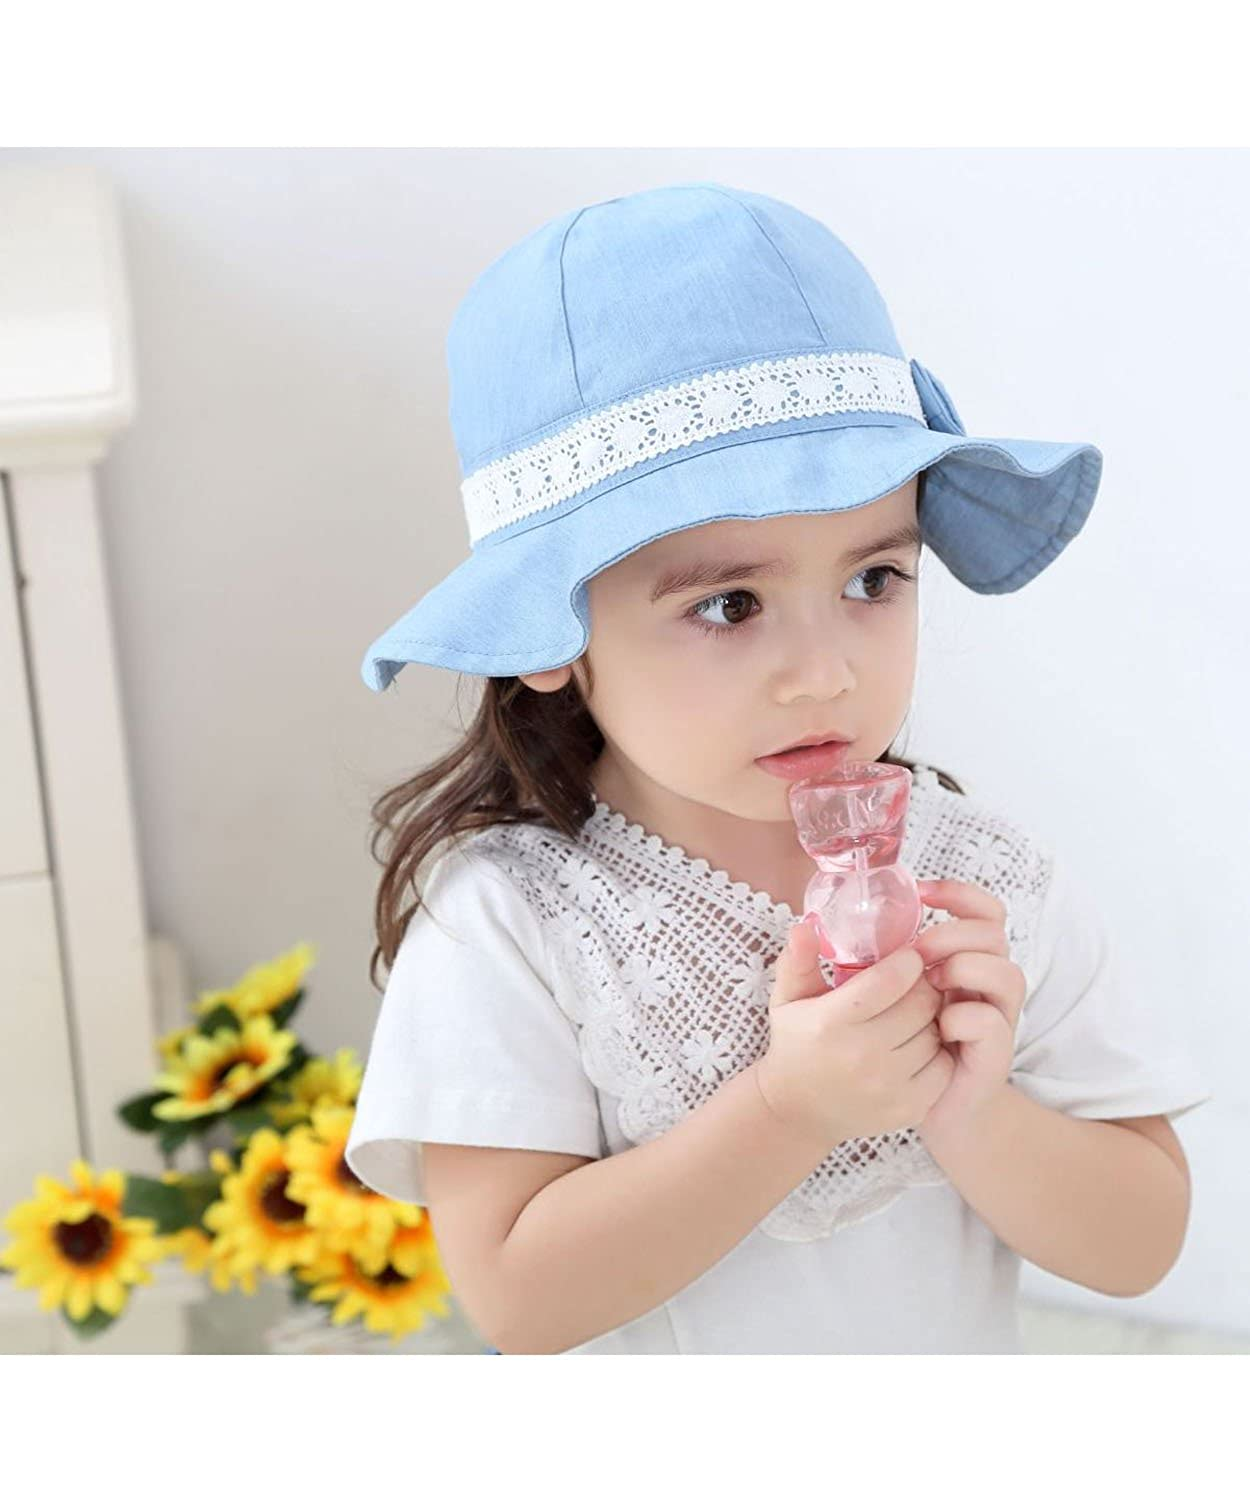 MZLIU Toddler Baby Girl Lovely Lace Cowboy Sun Hat Cotton 3m-6T